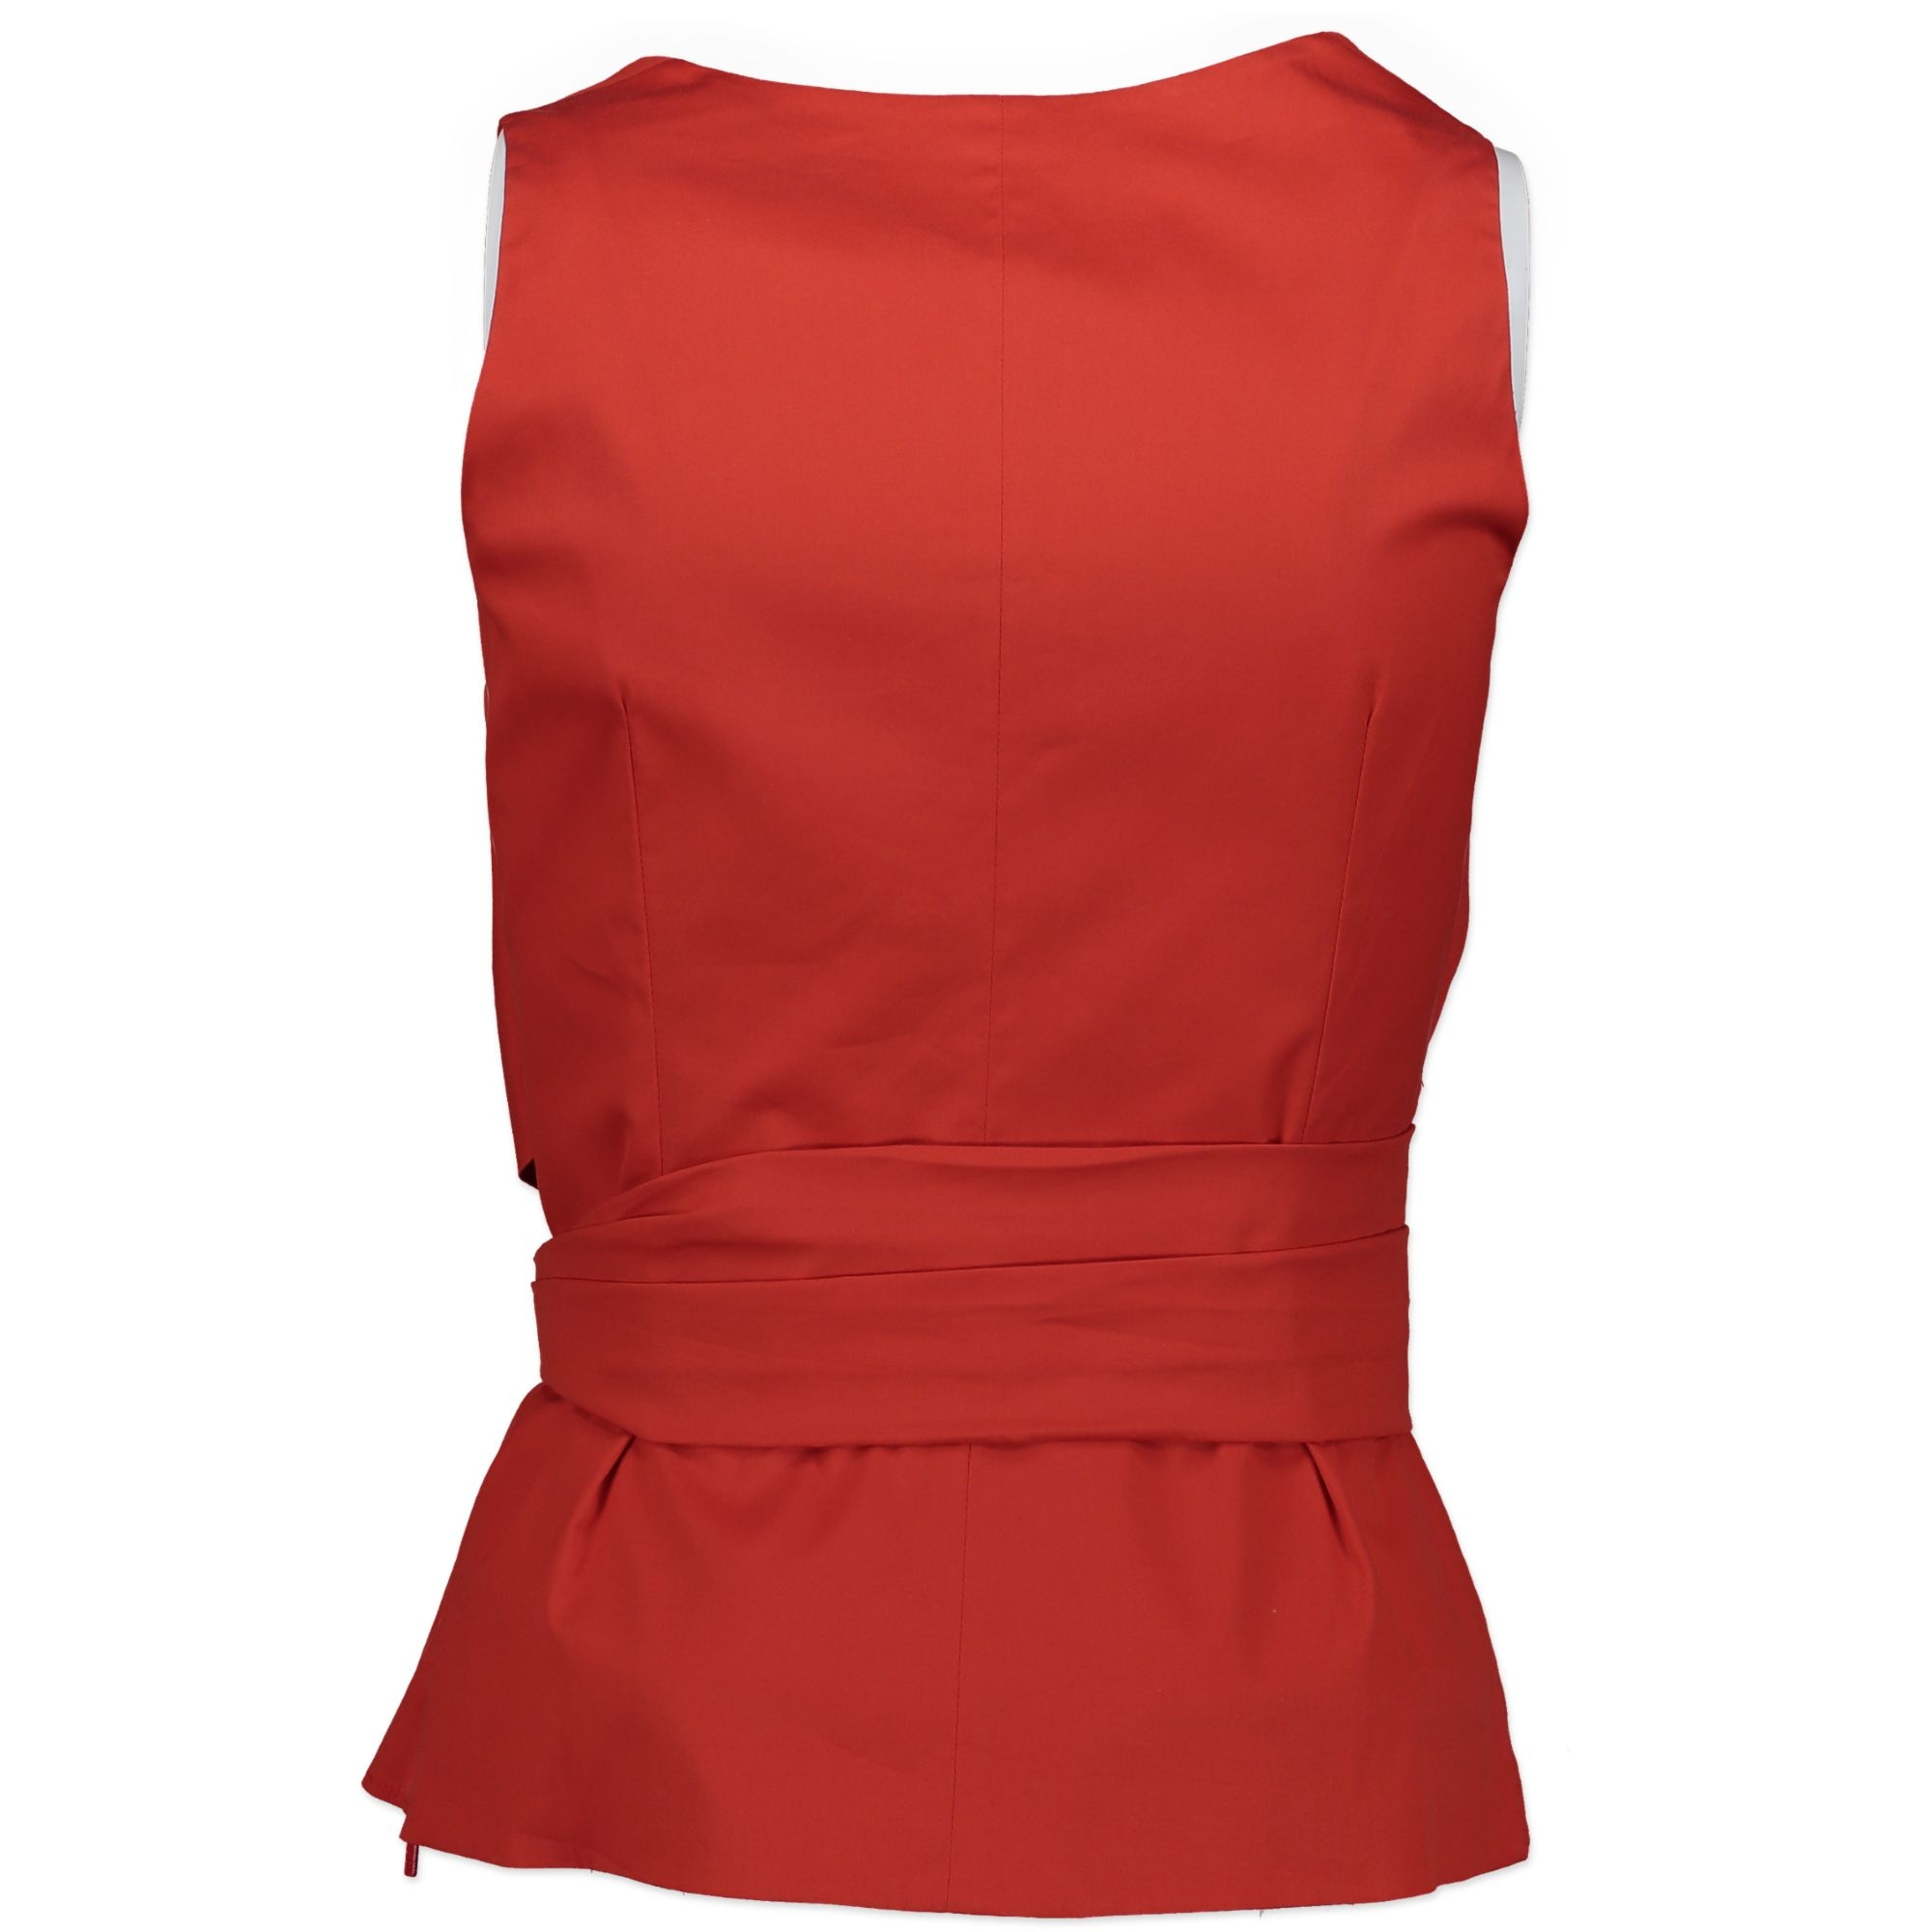 aa13c9d08d0f42 Koop Buy authentic secondhand Gucci top at the right price at labellov designer  vintage webshop. Koop